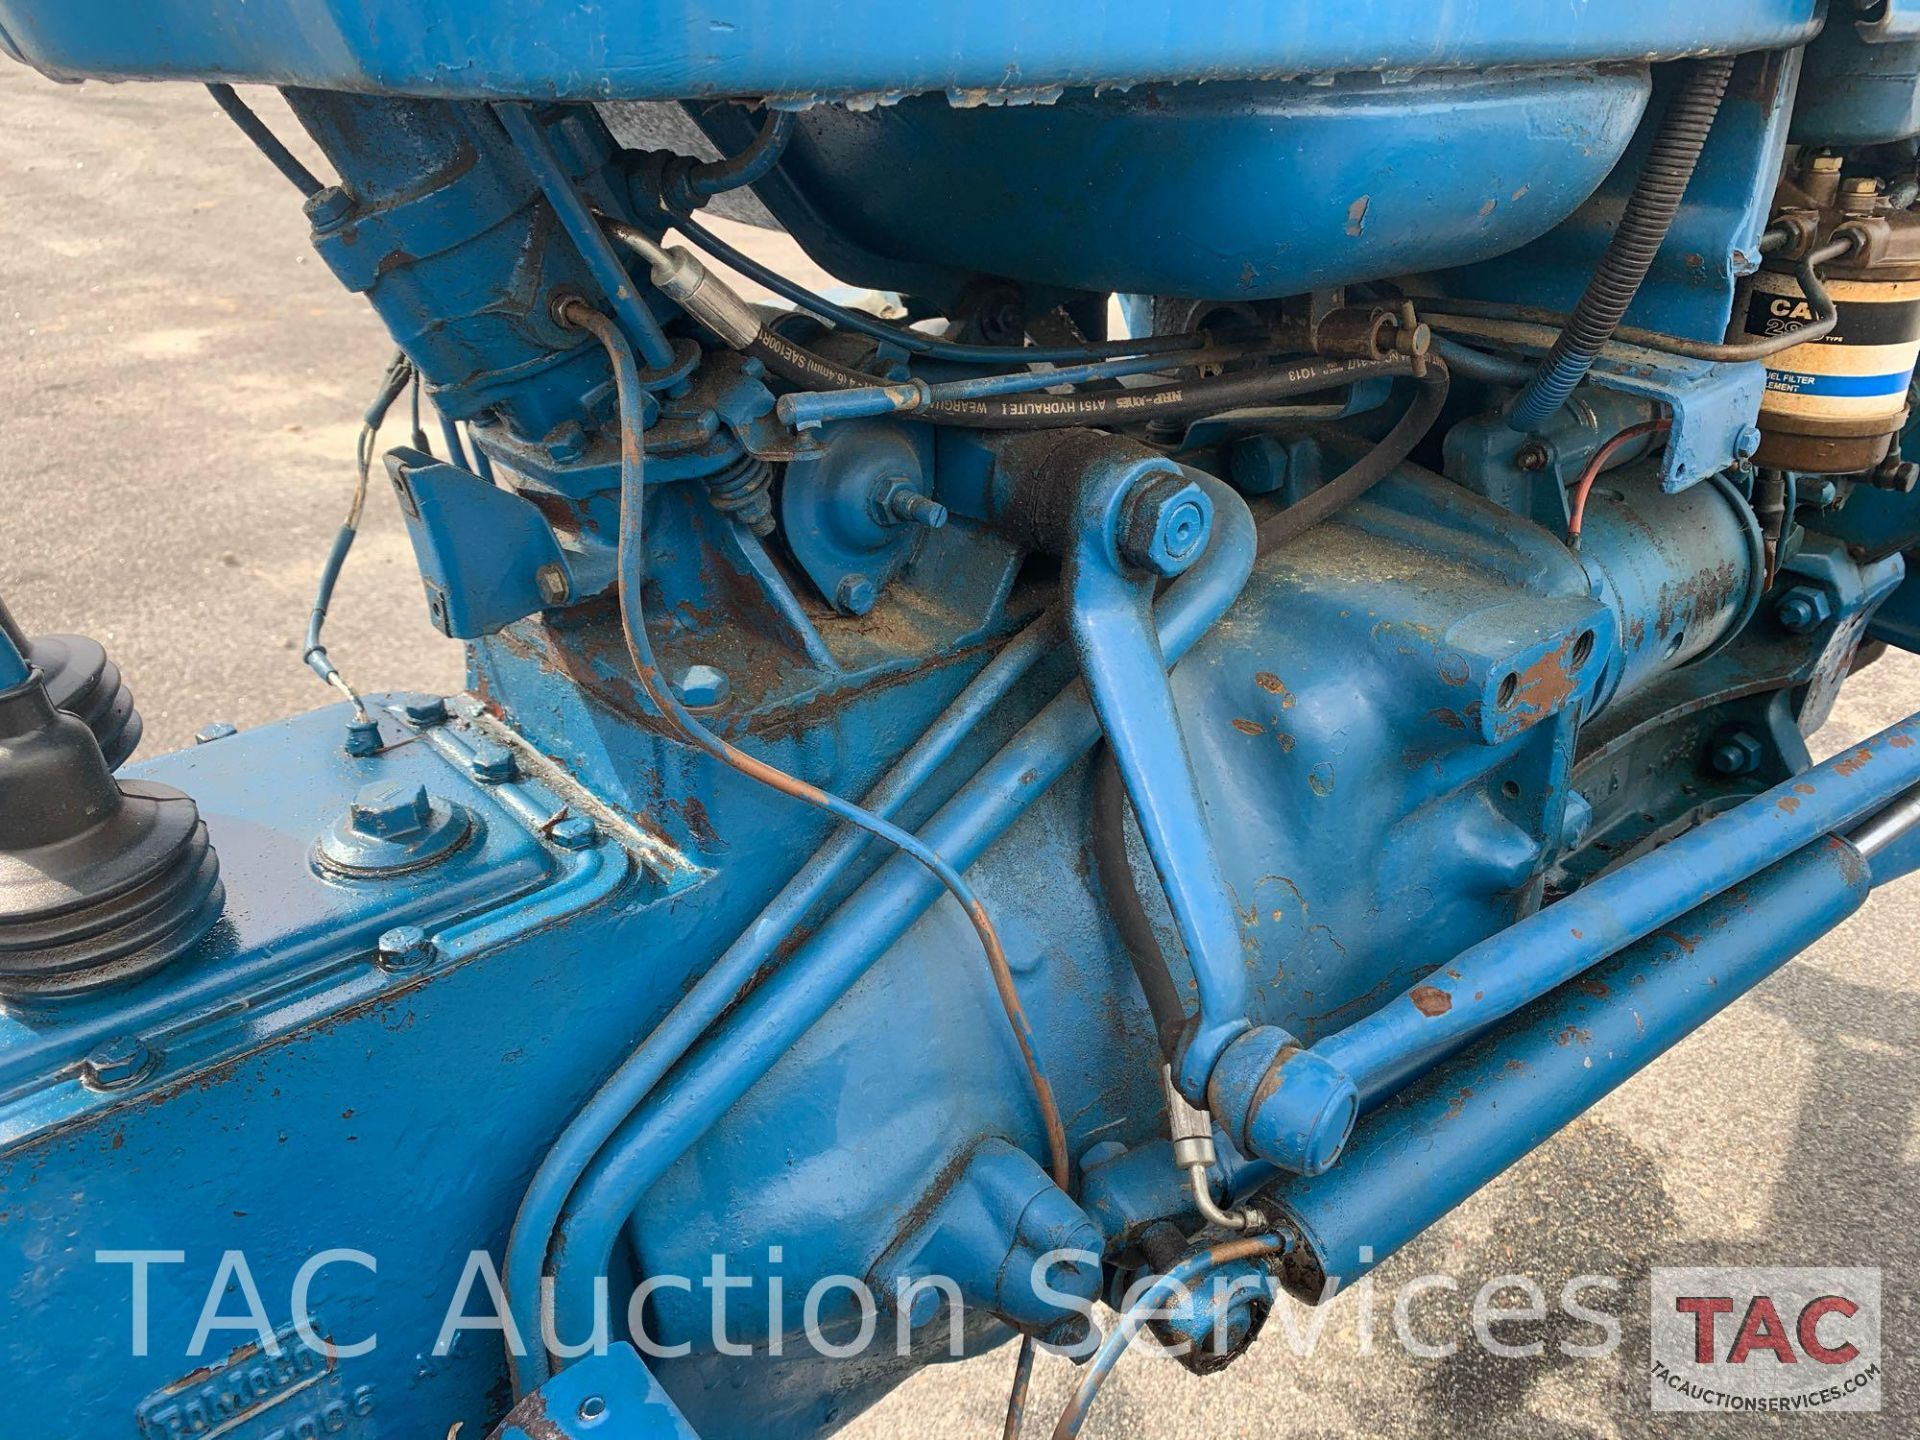 Ford 2000 Farm Tractor - Image 17 of 28